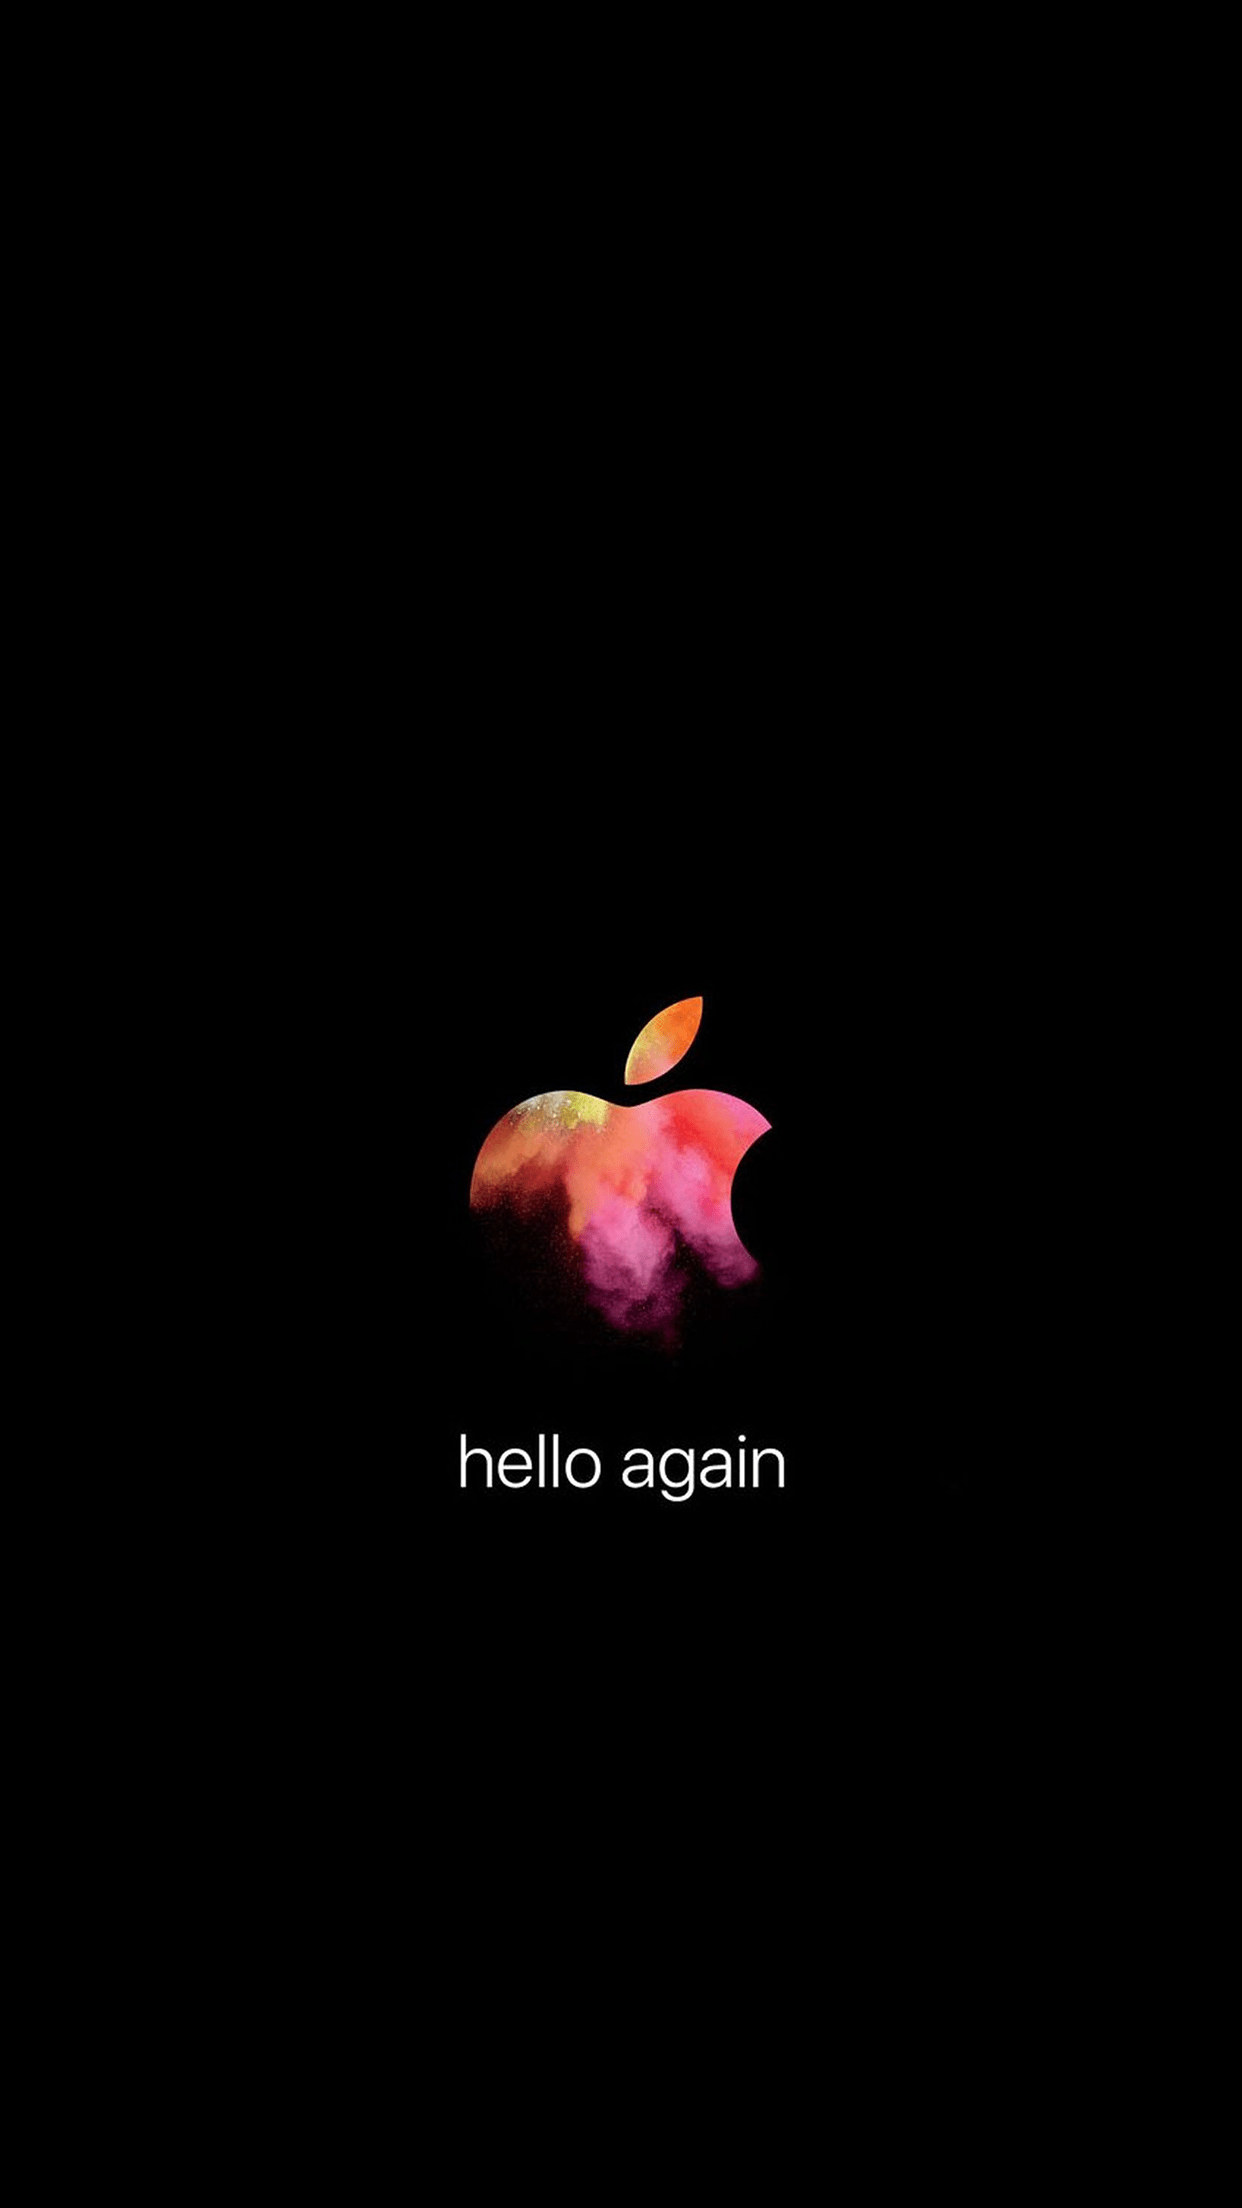 Hello Fall Wallpaper Macbook Pro Hello Again Apple Oktober Event Wallpaper